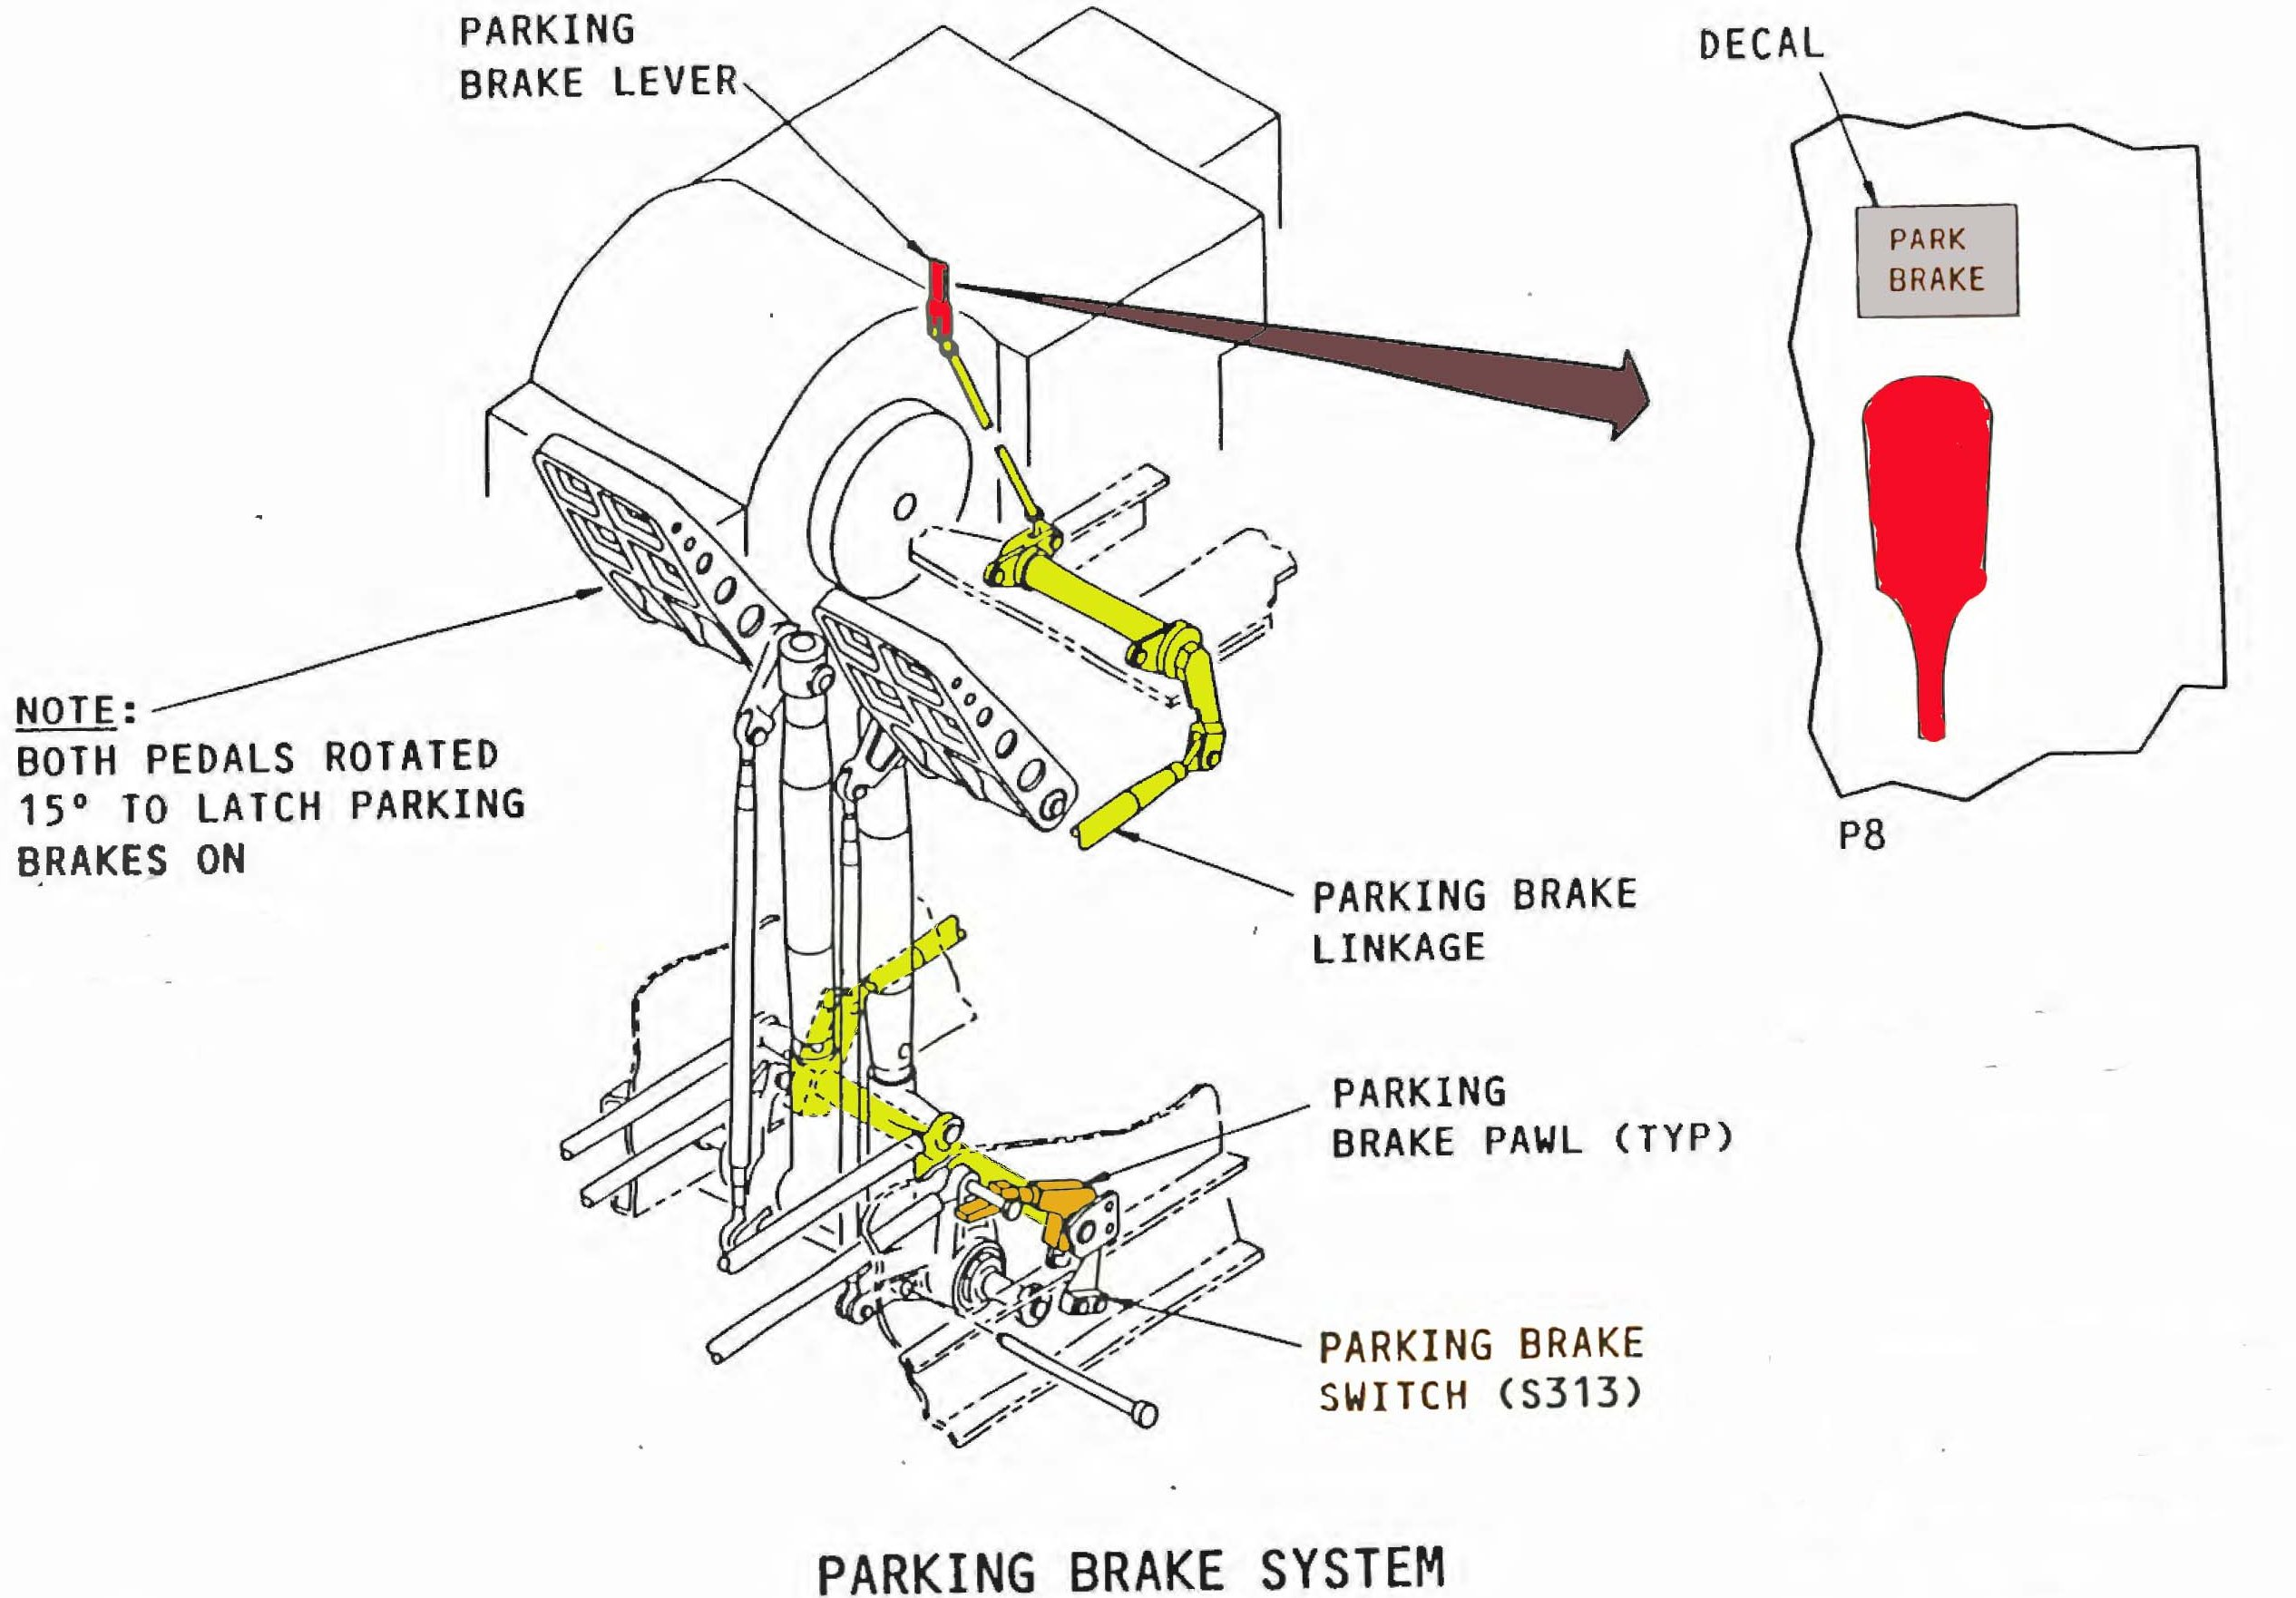 Figure 3: Boeing B747-400 Parking brake system, showing the mechanical interconnection (in yellow) between the parking brake lever (in red) and the parking brake pawl (in orange) and the location of parking brake switch (switch S313)